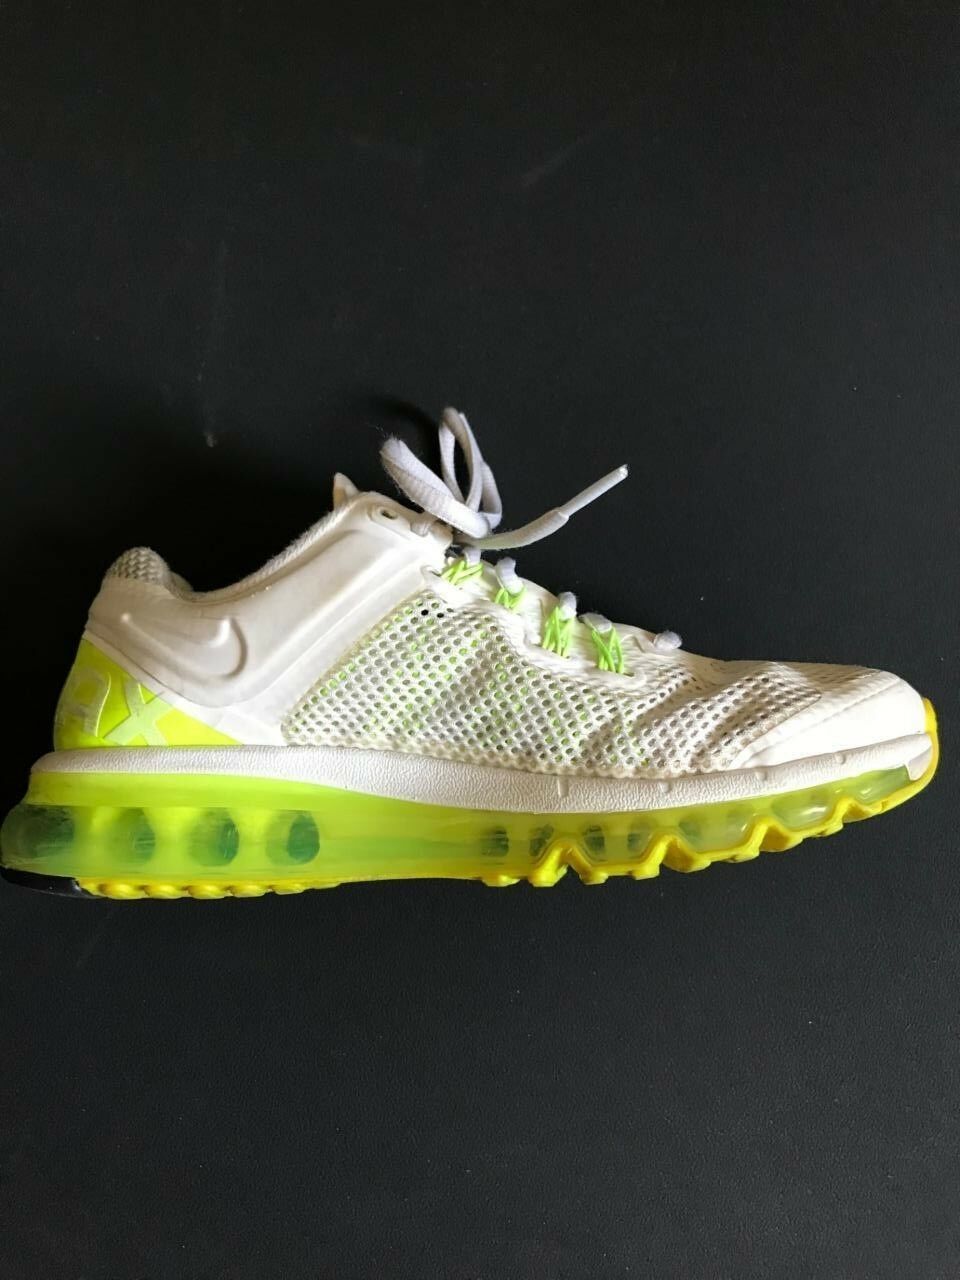 Nike Air Max 213 Fit Sole Cushioning Fly Mesh Upper Women Athletics Running shoes